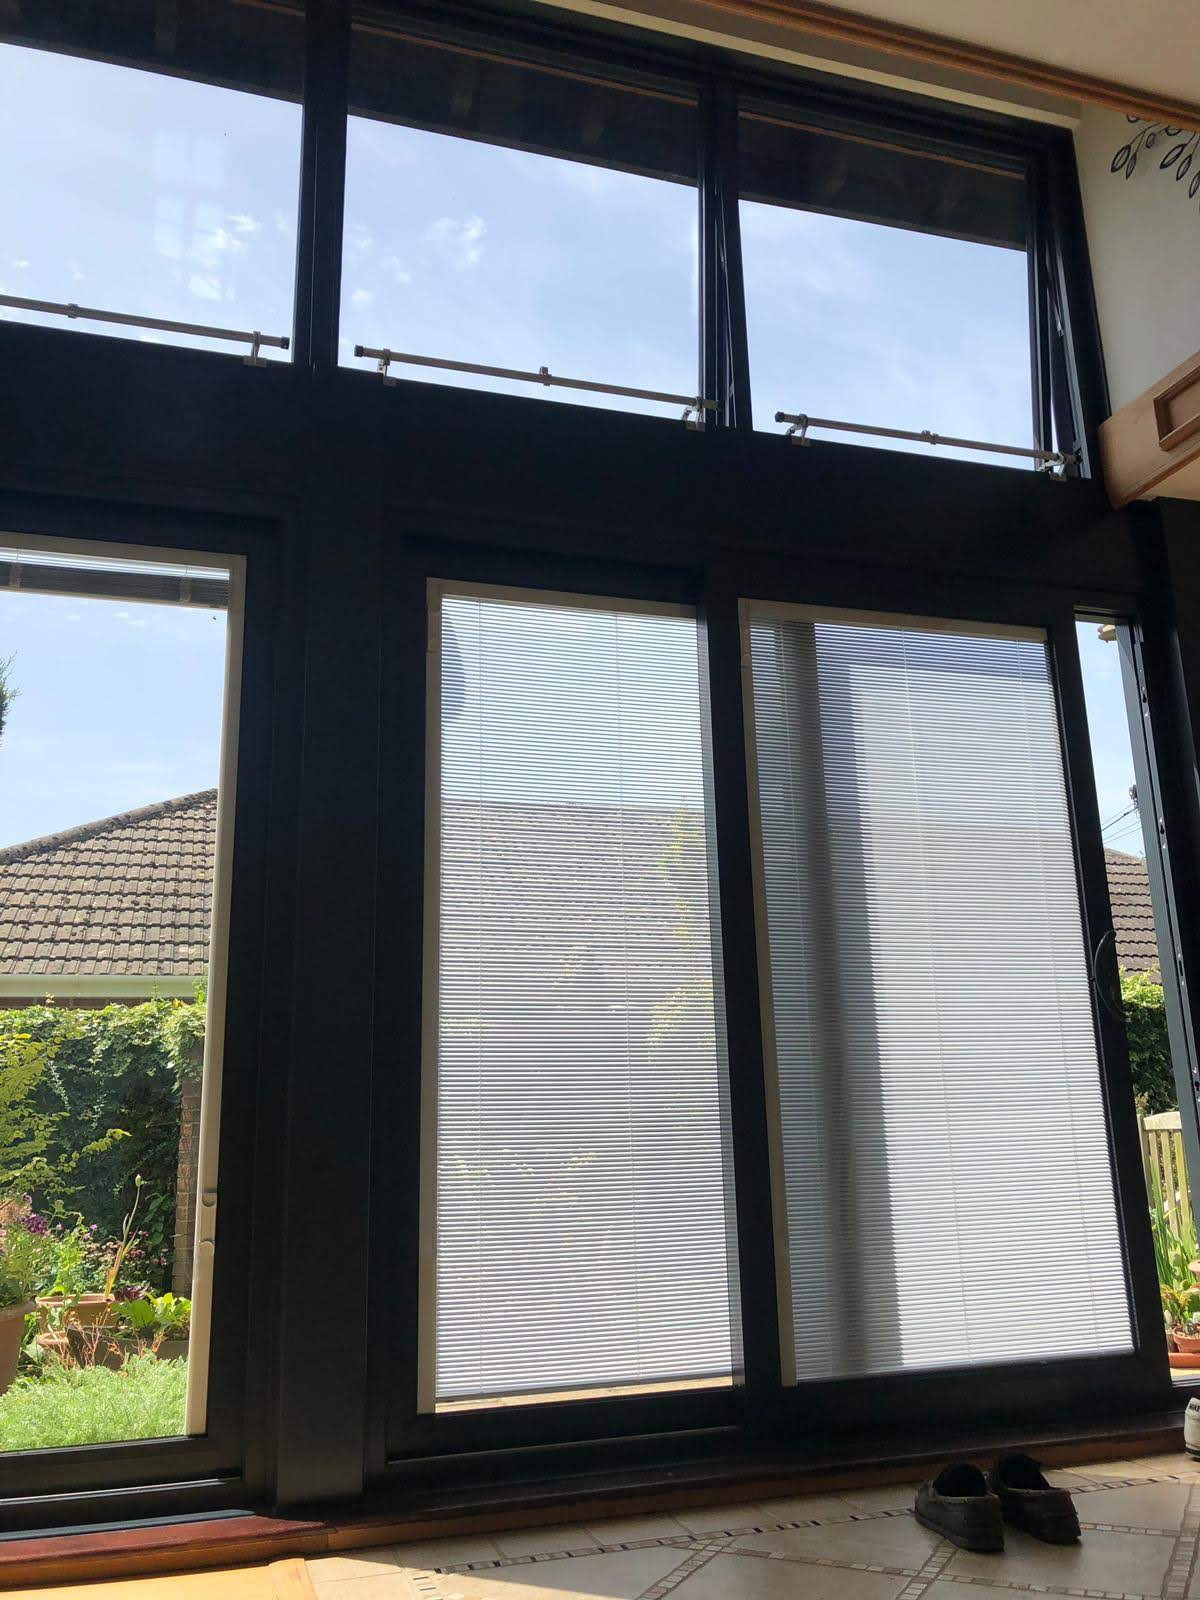 New french doors with built-in-blinds design.